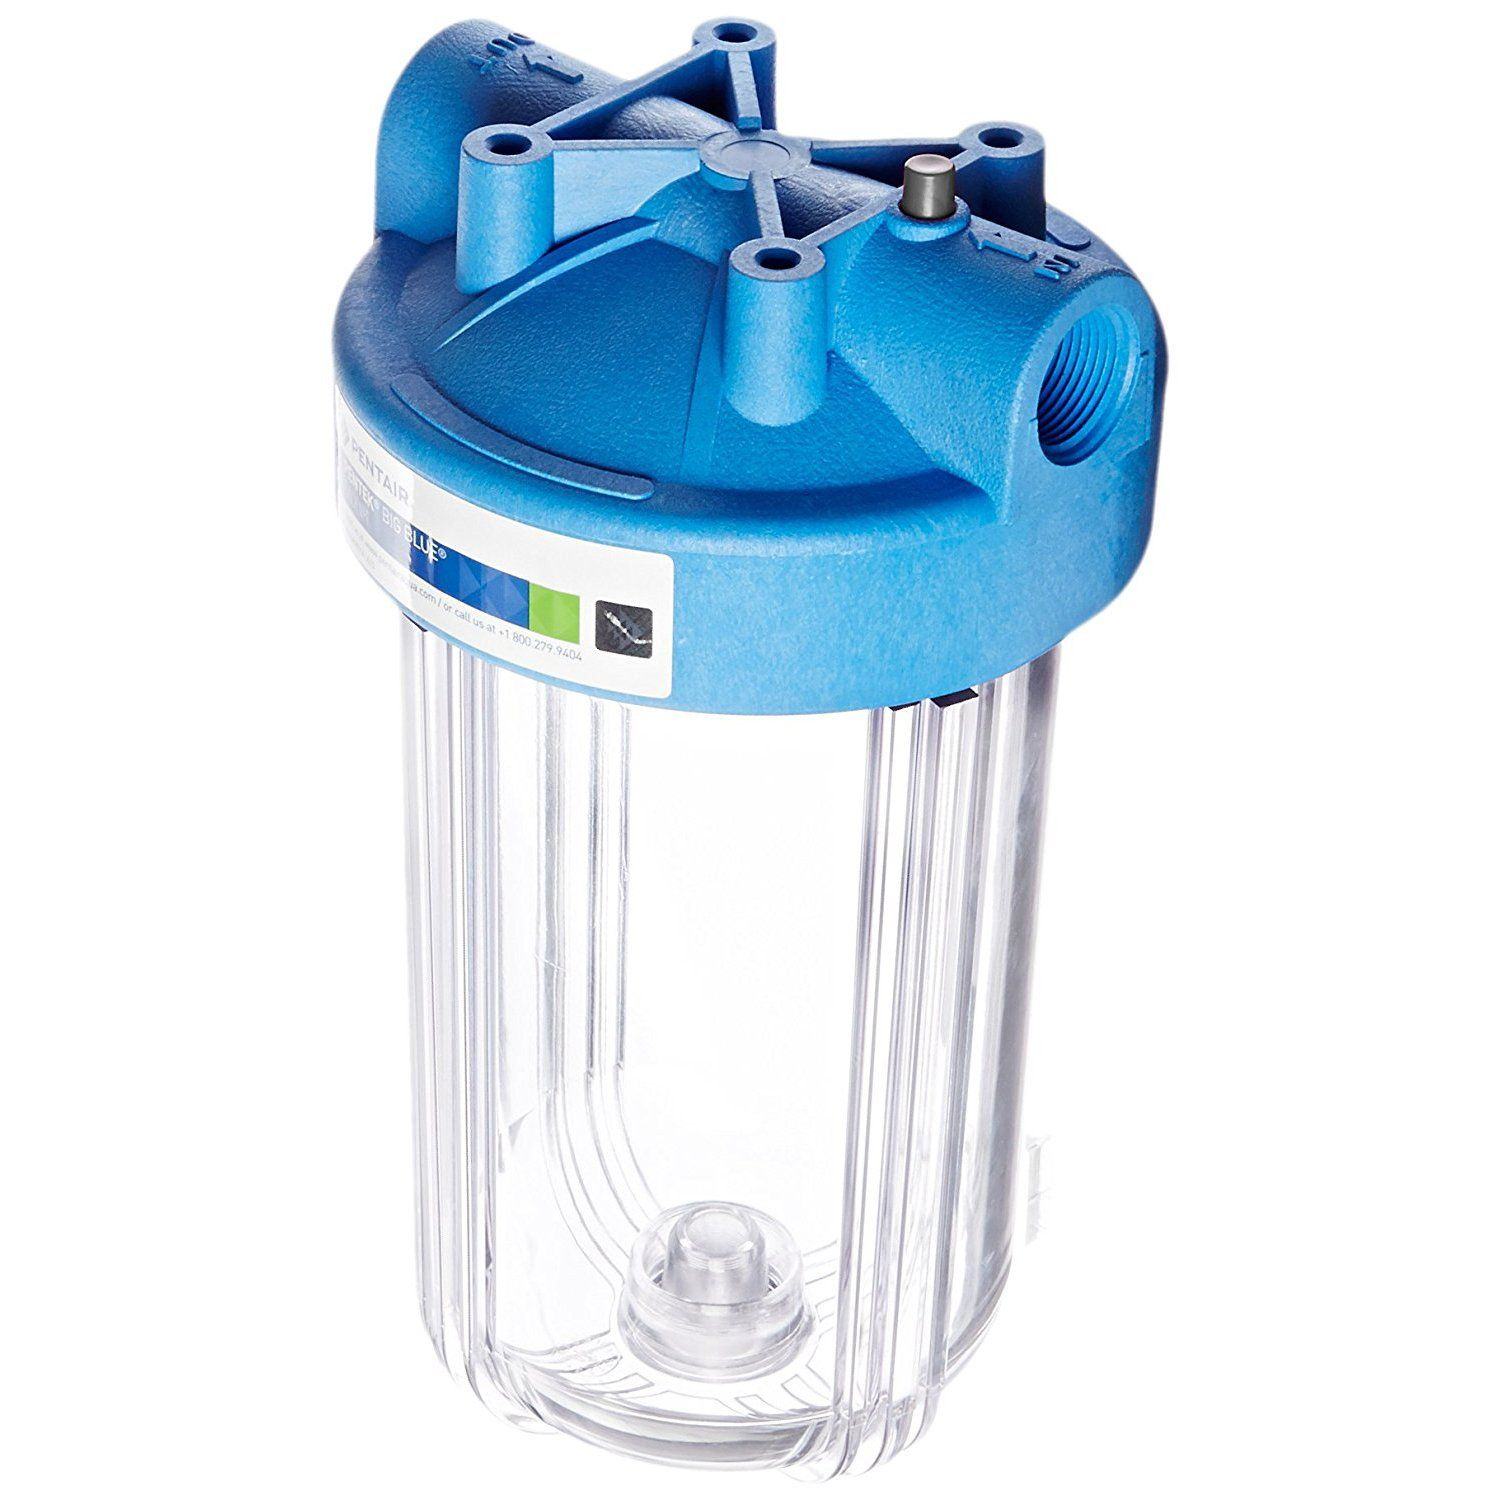 Pentek Big Clear Lx 10 Whole House 10 Filter Housing Clear Filters Whole House Water Filter Blue Filter